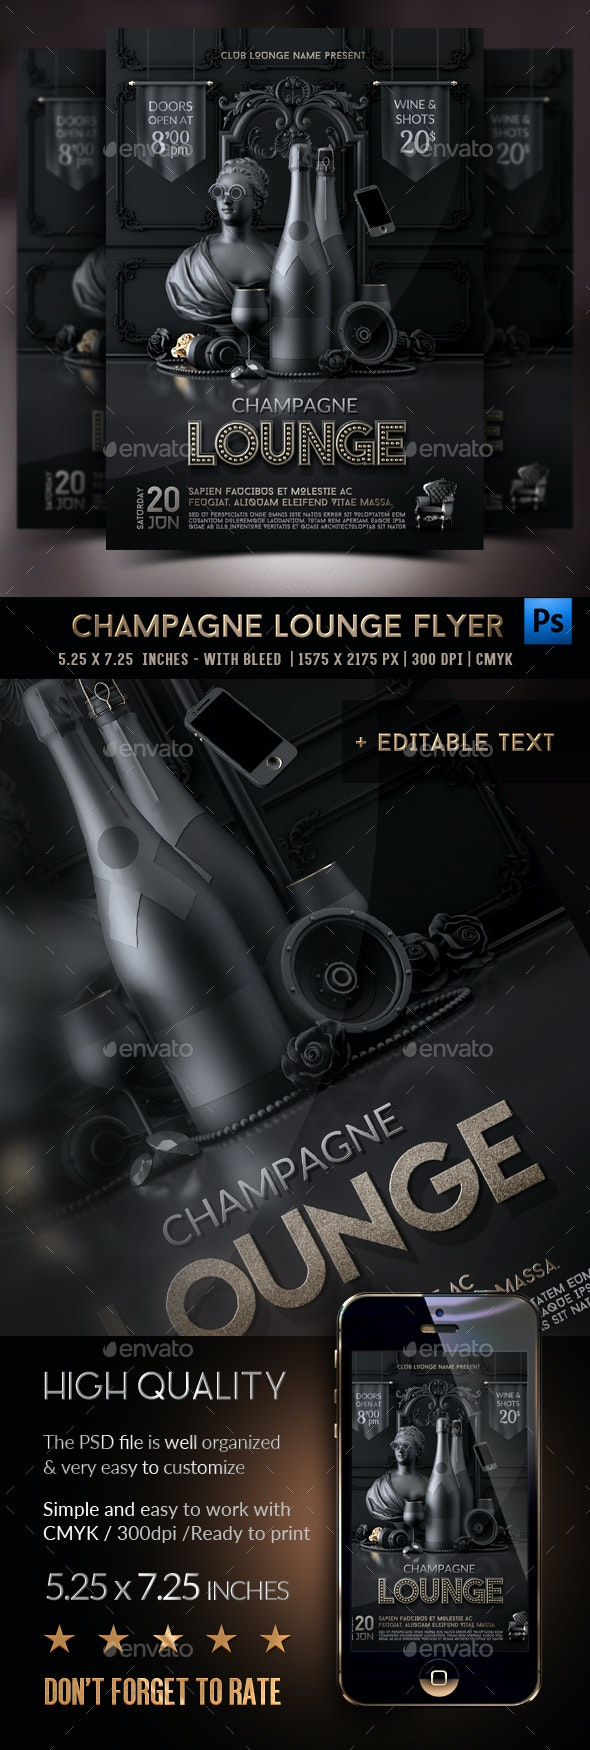 Champagne Vip Lounge Flyer - Clubs & Parties Events